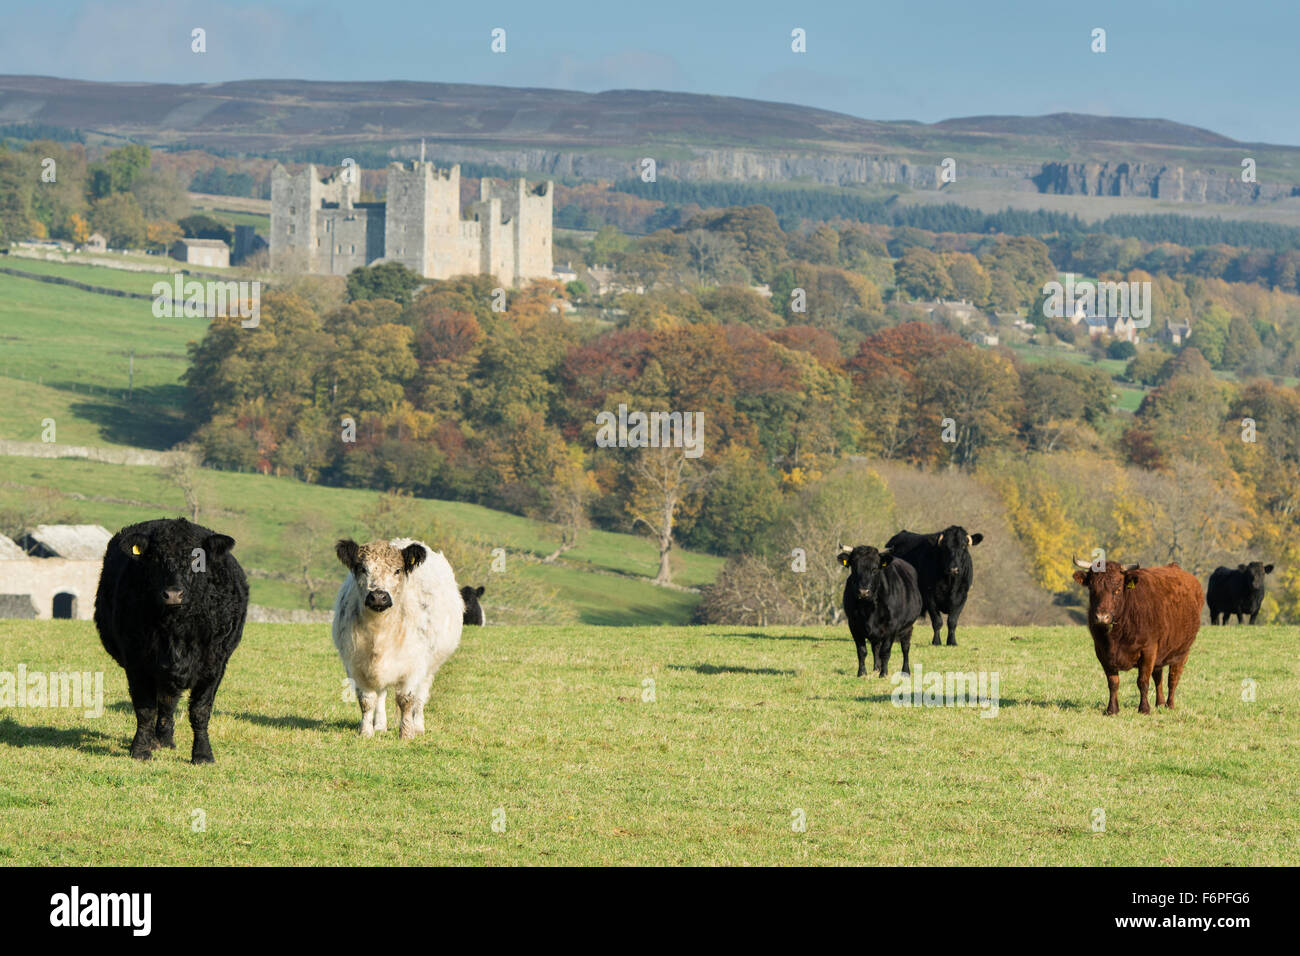 Traditional British cattle in wensleydale countryside, with Castle Bolton in background. North Yorkshire, UK - Stock Image